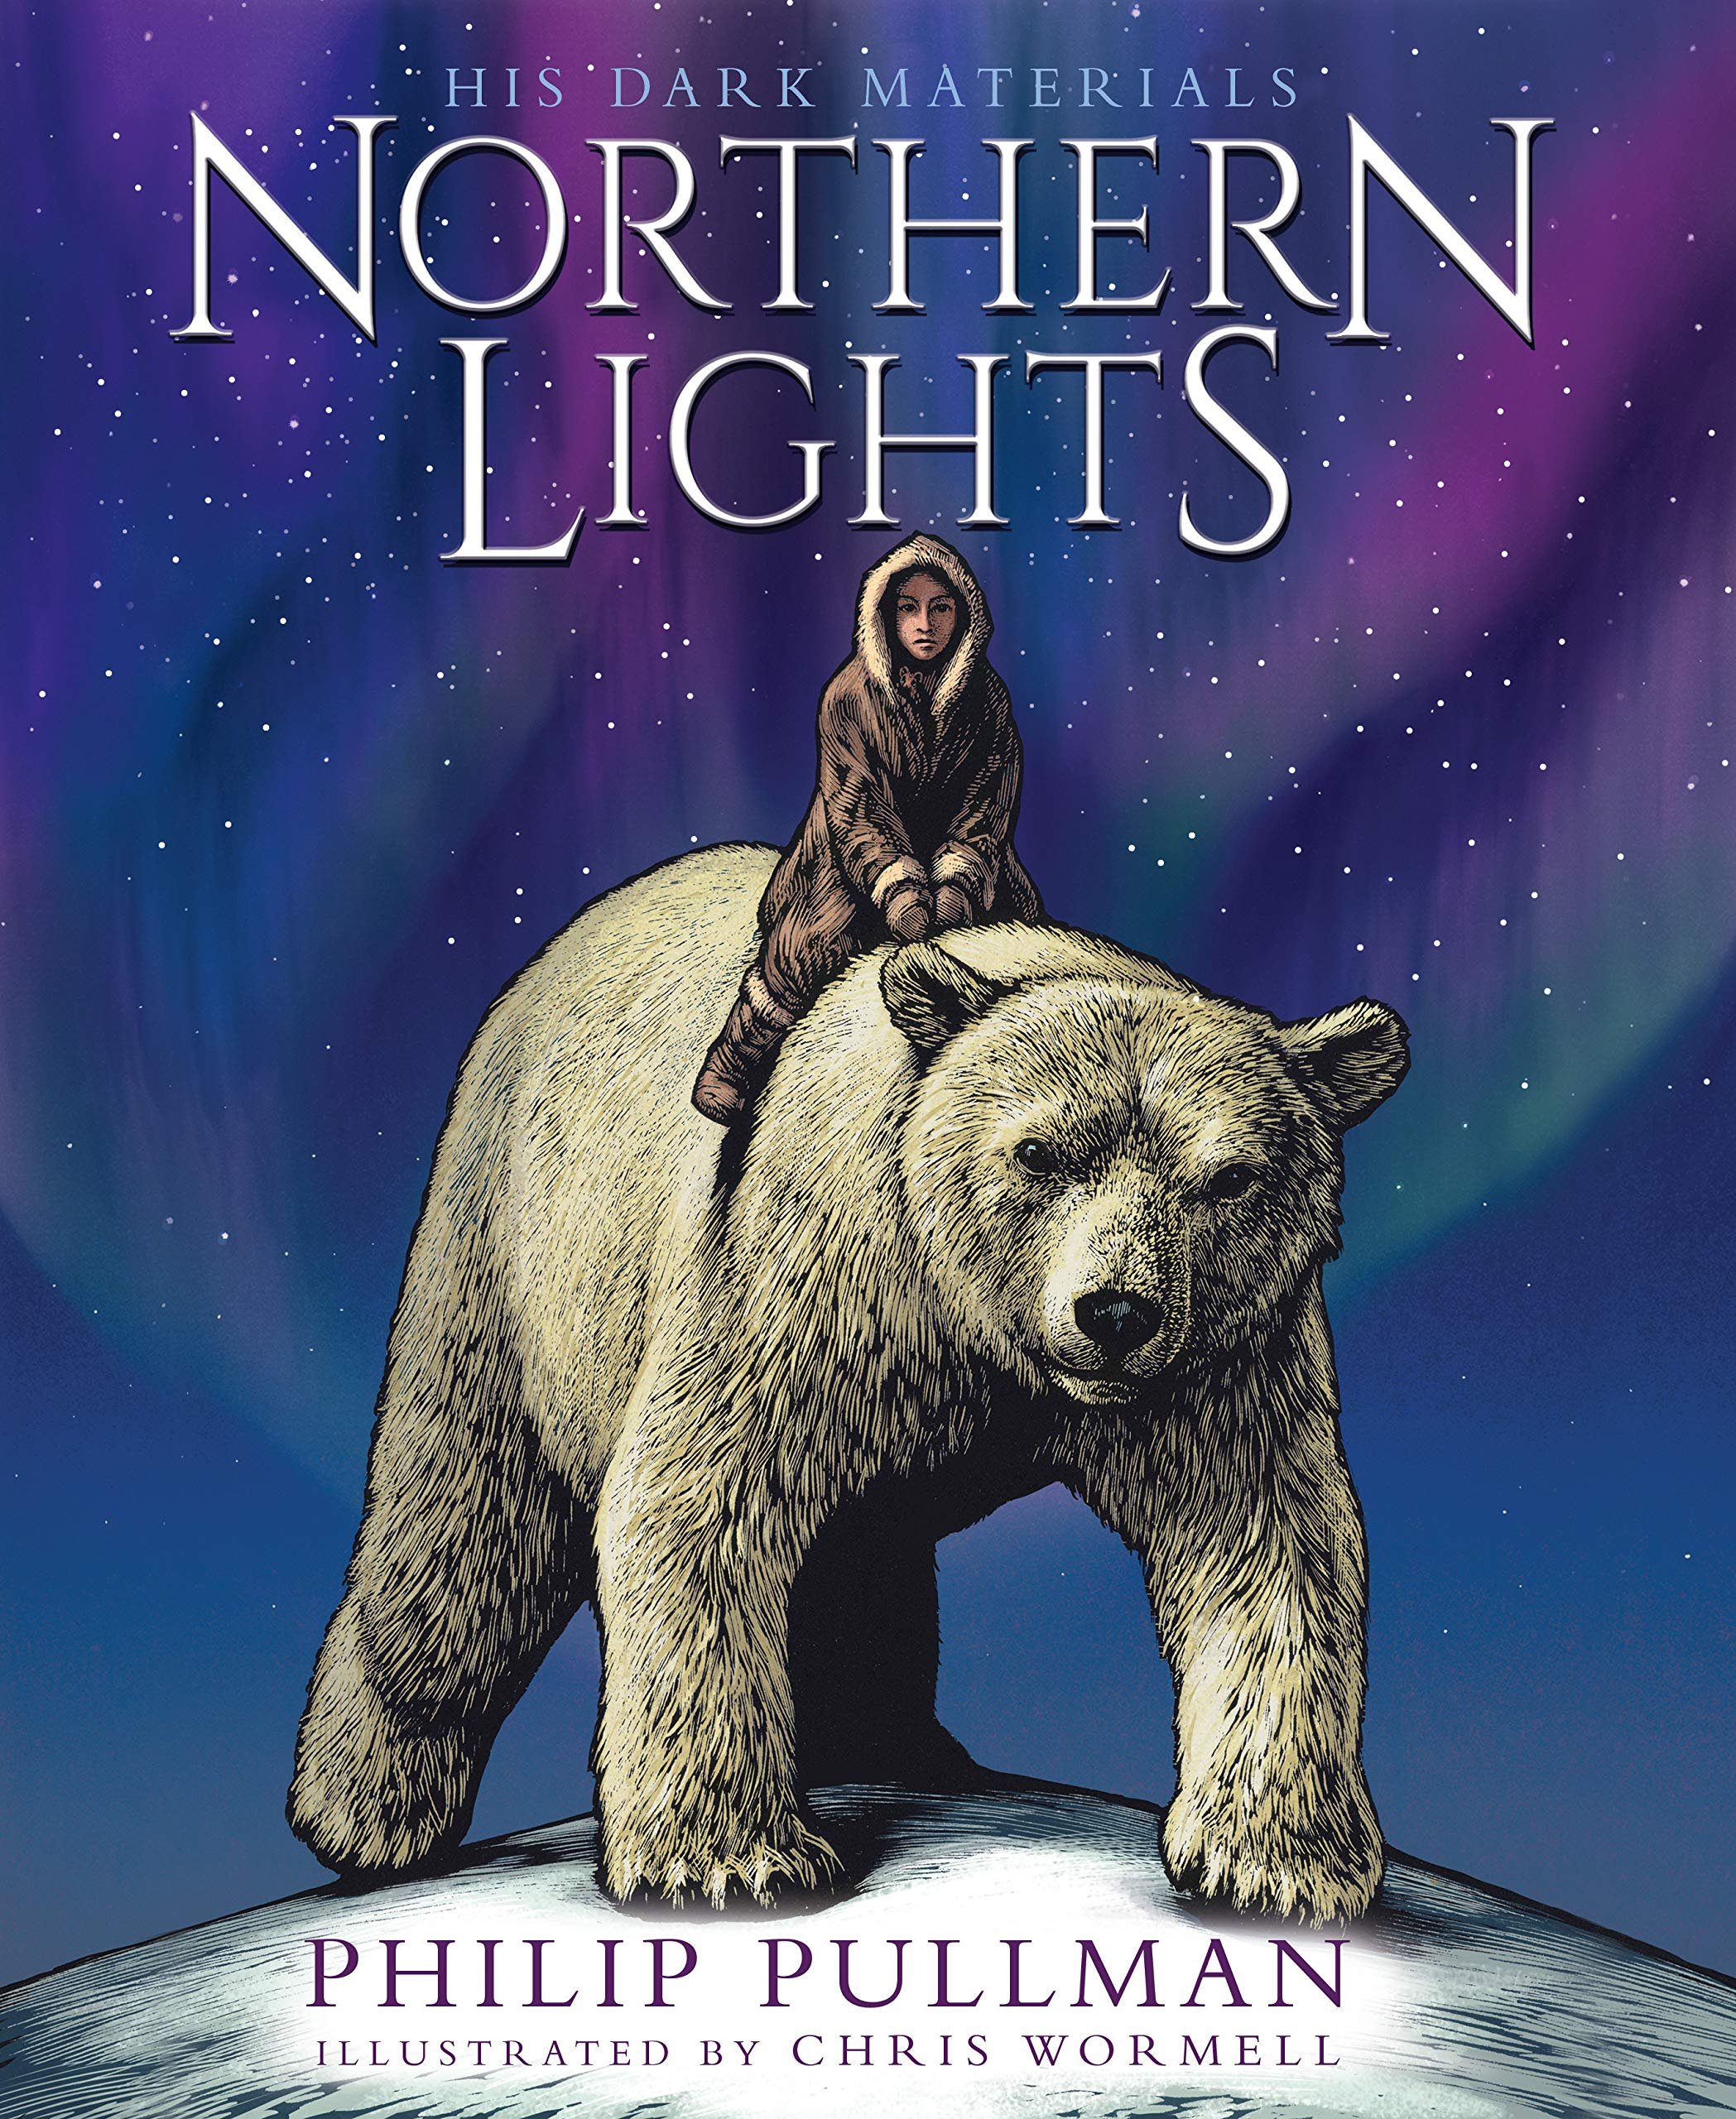 Image for Northern Lights: the Illustrated Edition (His Dark Materials)